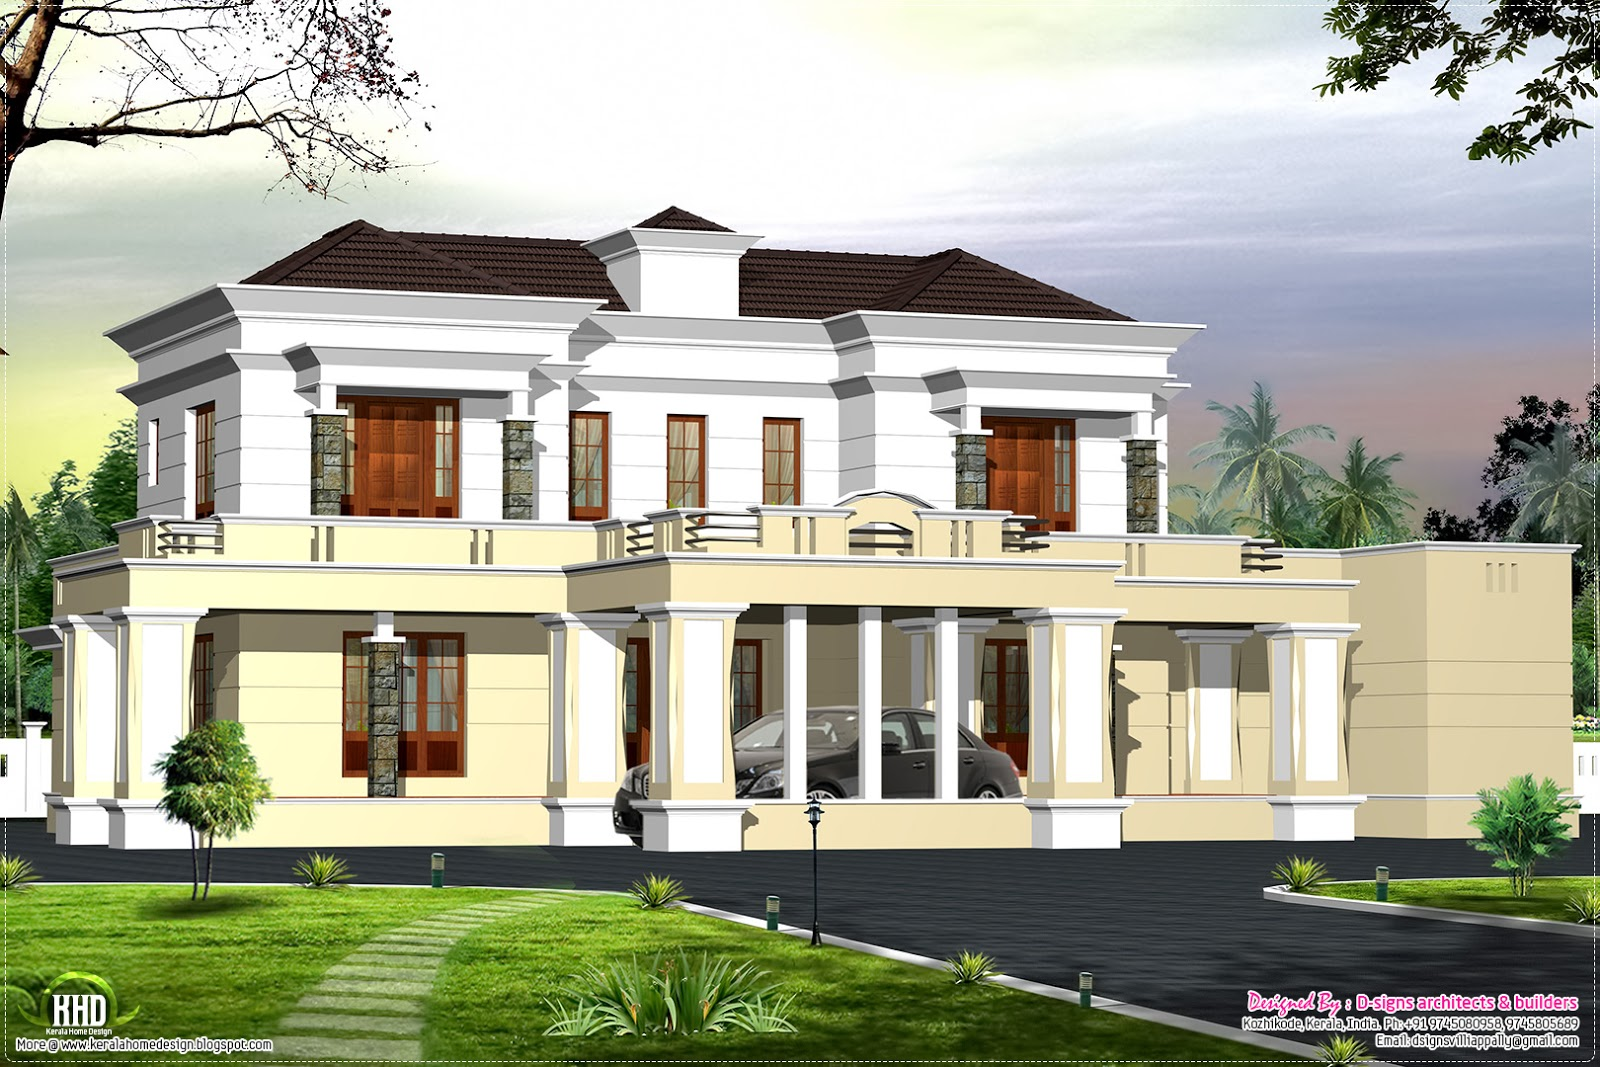 Victorian style luxury home design kerala home design Luxury victorian house plans